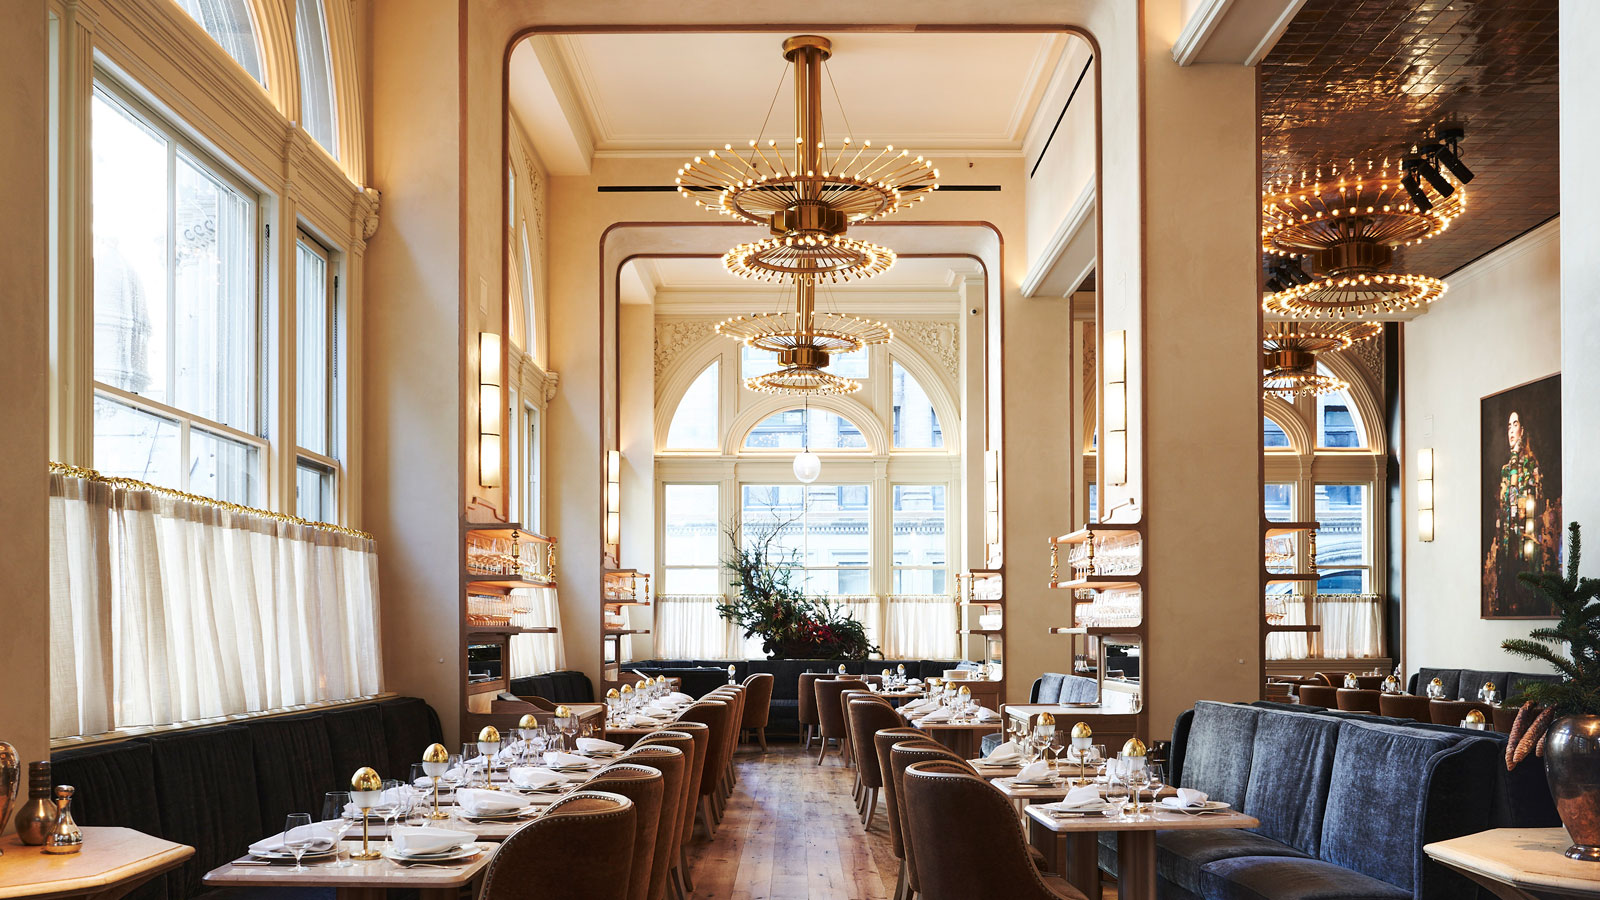 Turning Tables: Stephen Starr's Transportive European Eatery Opens in New York